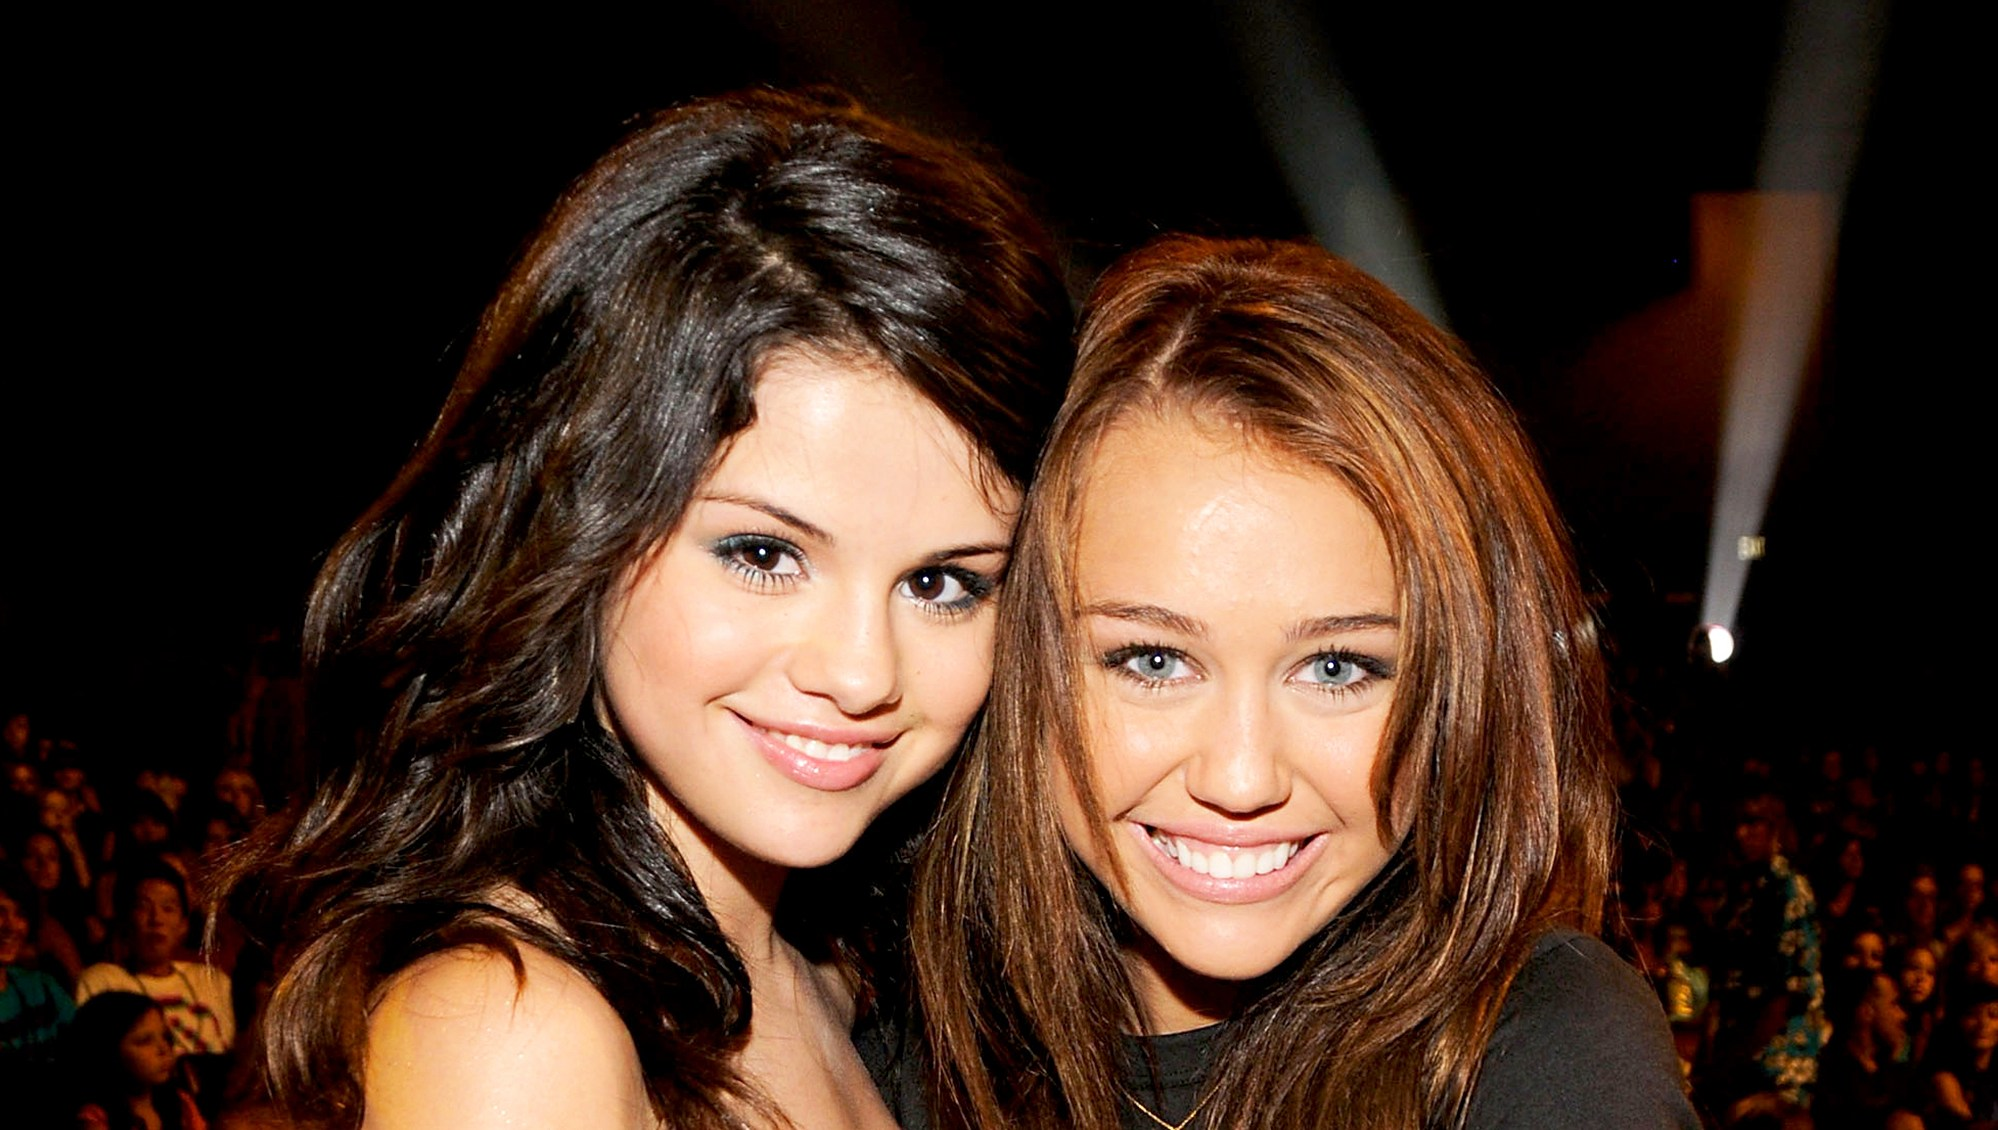 Selena Gomez and Miley Cyrus during the 2008 Teen Choice Awards at Gibson Amphitheater in Los Angeles, California.